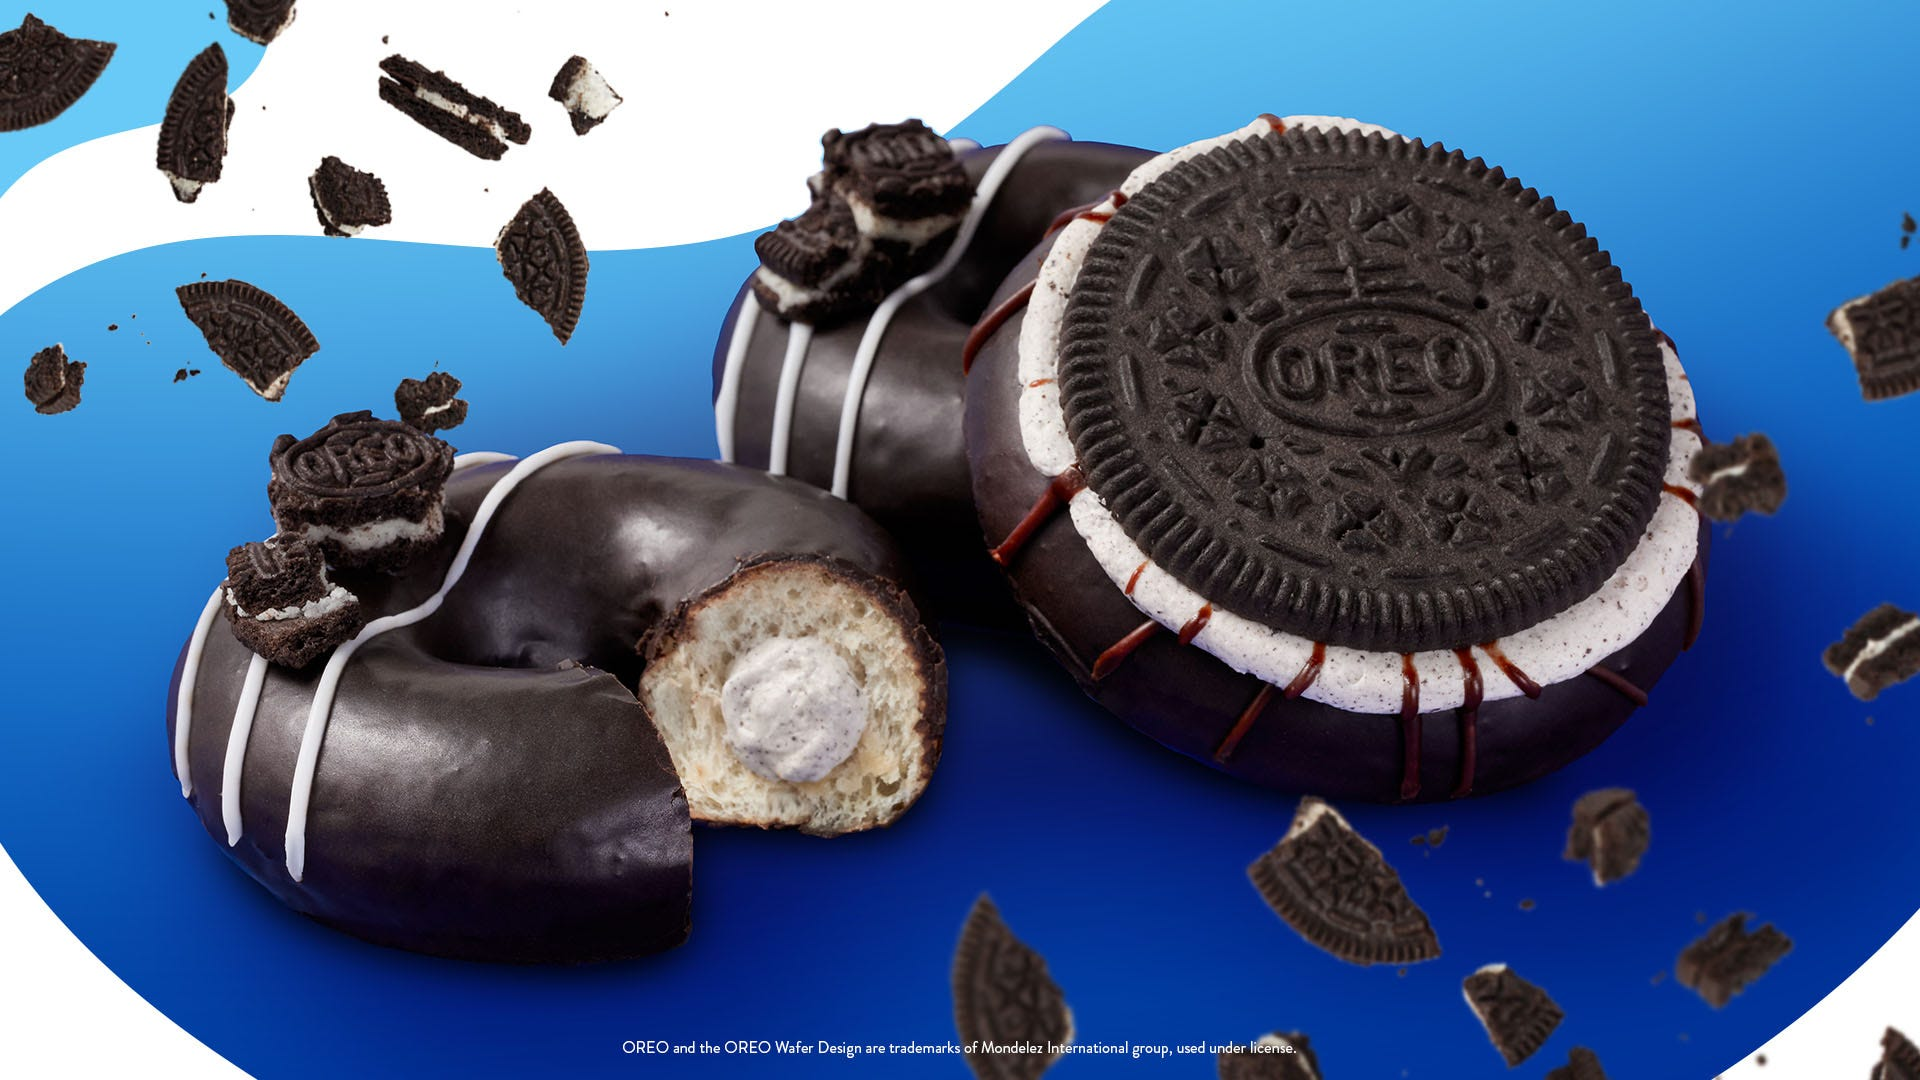 Krispy Kreme's new Oreo cookie donuts with Oreo glaze are available for a limited time nationwide